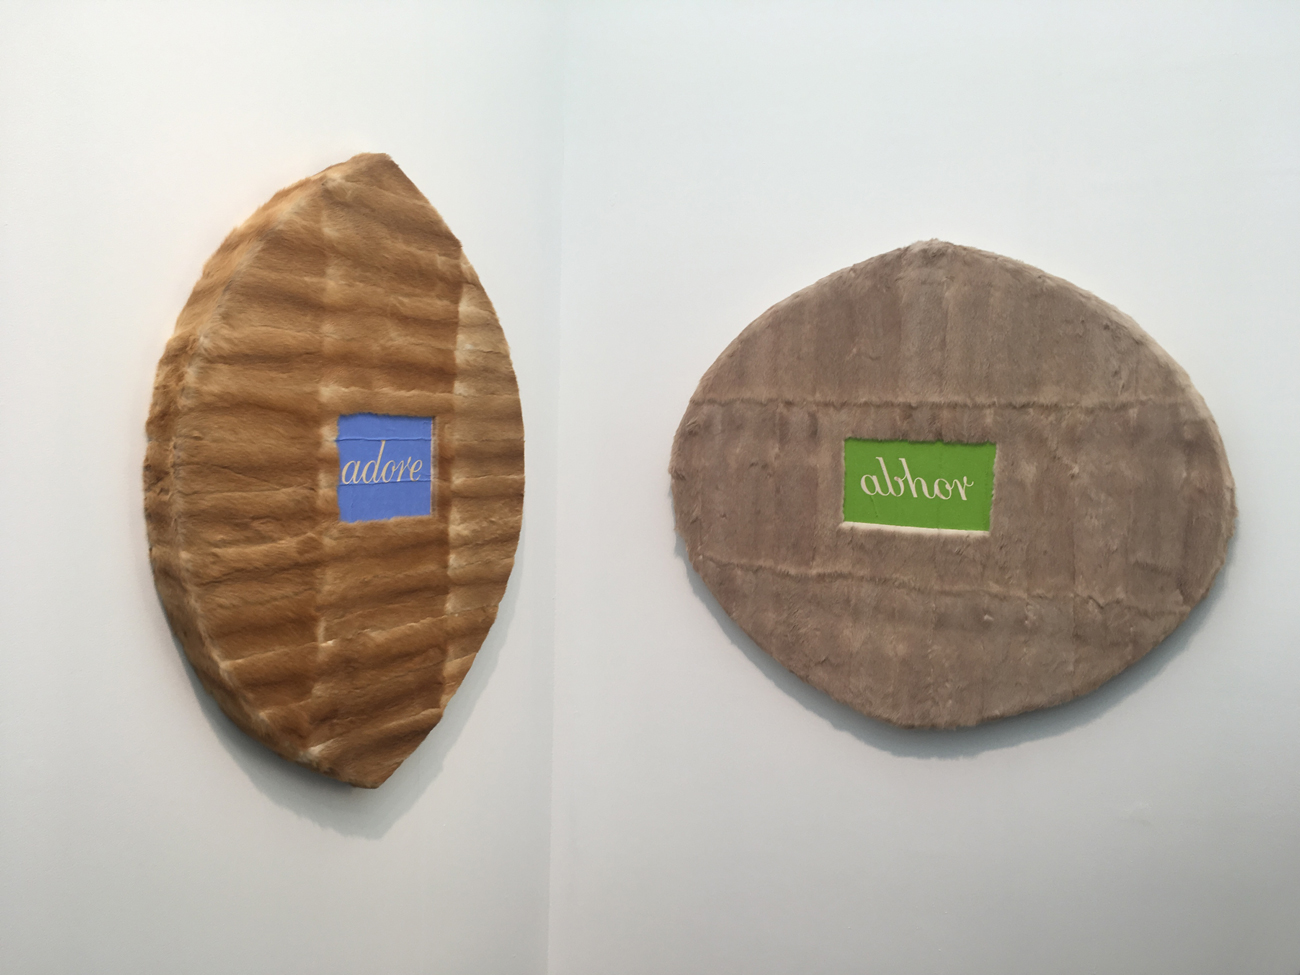 Helen Chadwick, Adore; Abhor, 1994,Oil on fur, plywood, MDF, on two panels,2 panels; 100 x 110 cm and 116 x 93 cm